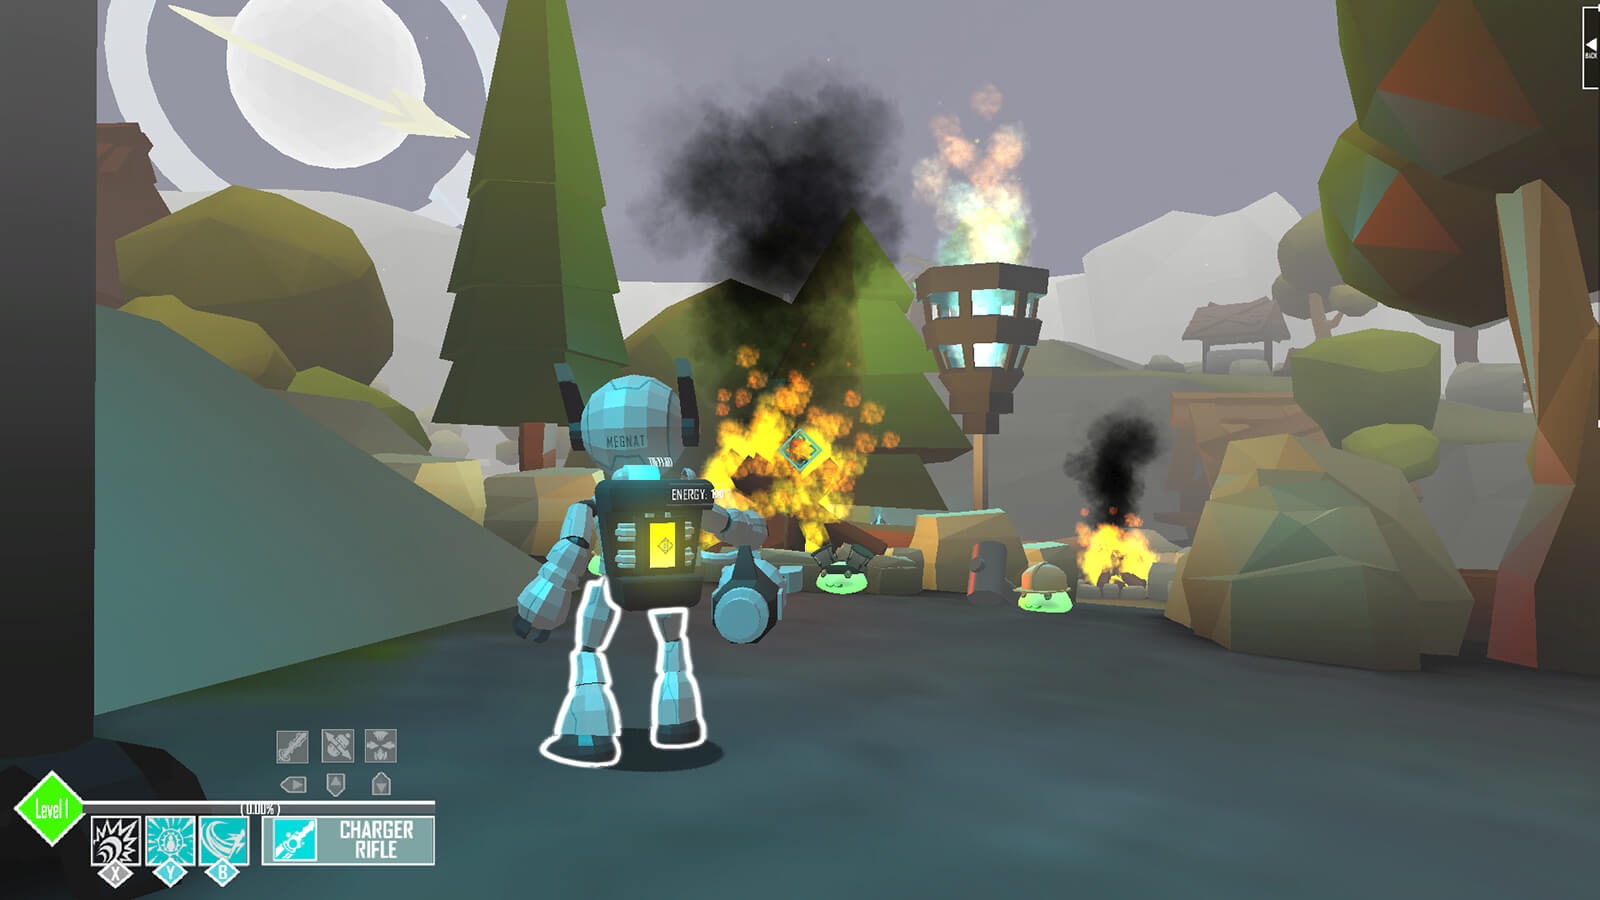 A robot seen from behind confronting short green blobs of slime in a forested area with smoke and flames appearing ahead.